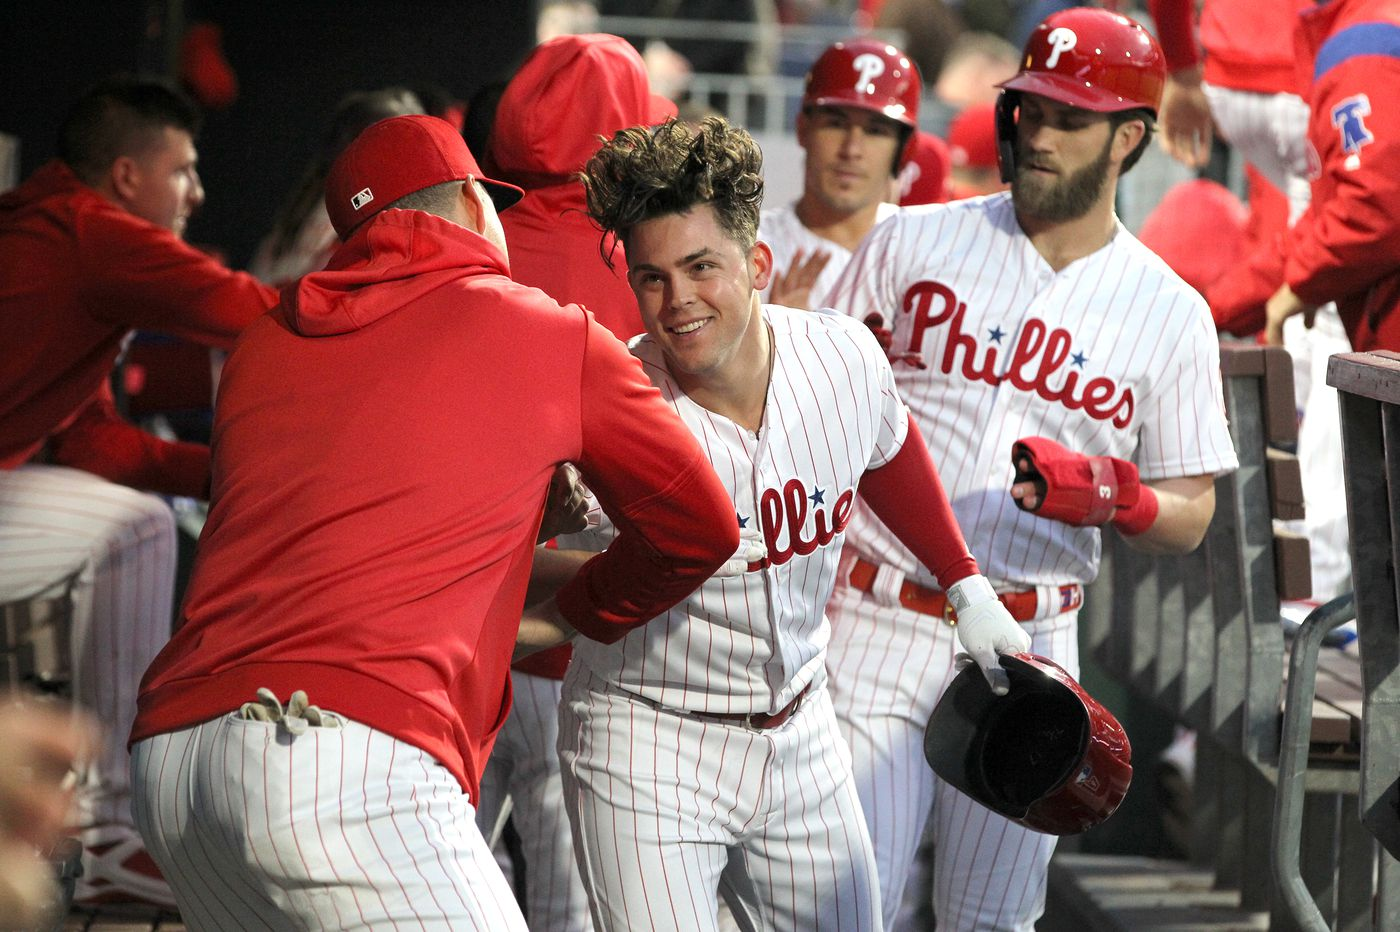 Phillies jump on Mets with 10-run first inning, Scott Kingery stays hot